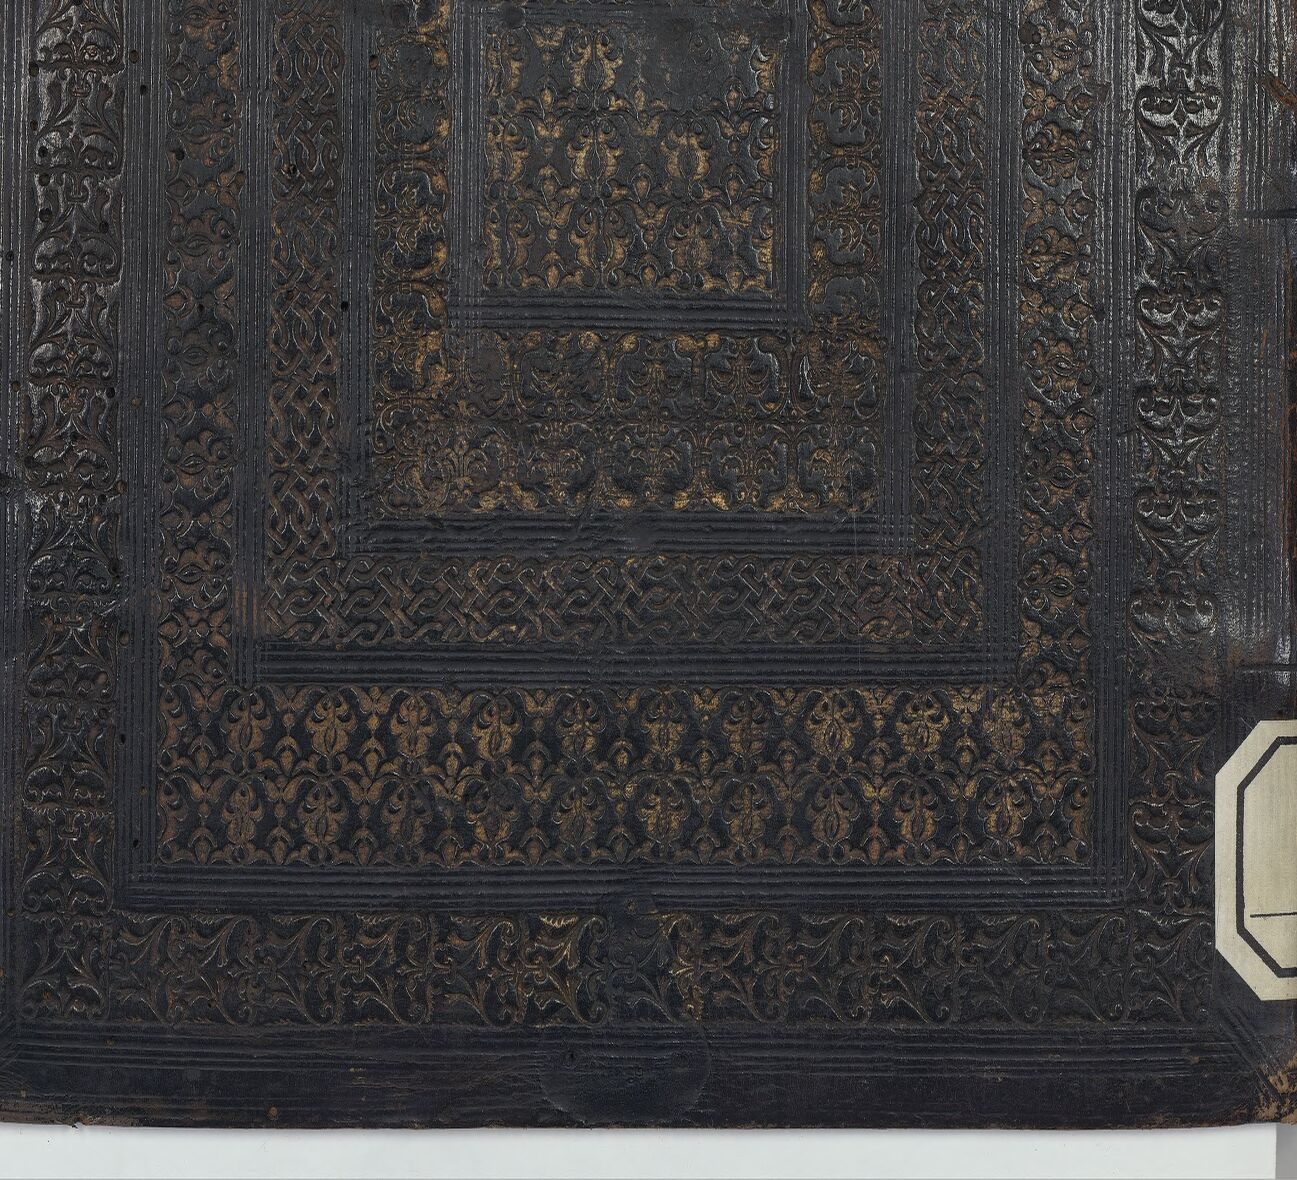 Tooled binding